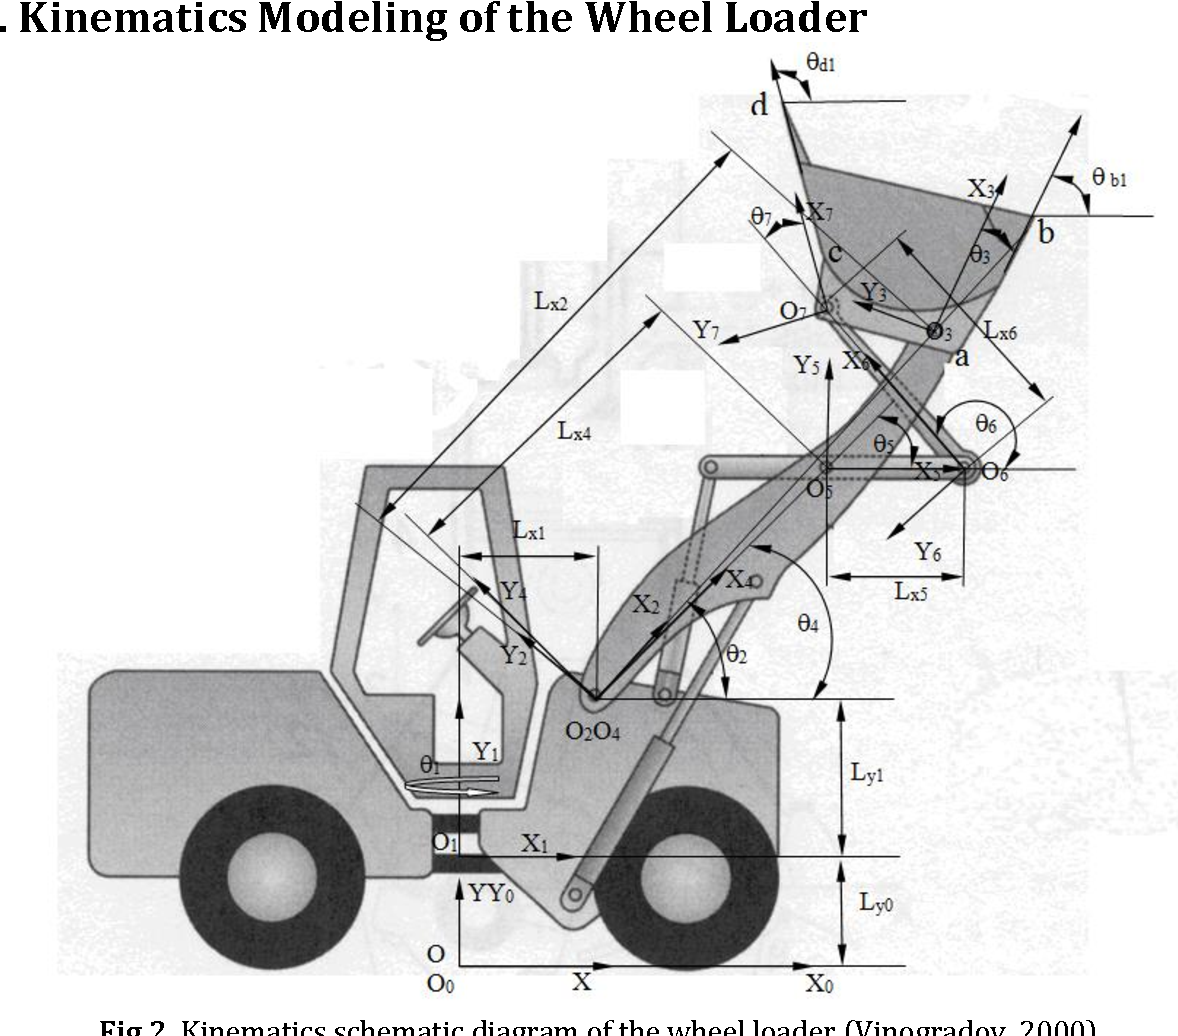 Kawasaki Loader Wiring Schematics - Wiring Diagram G11 on